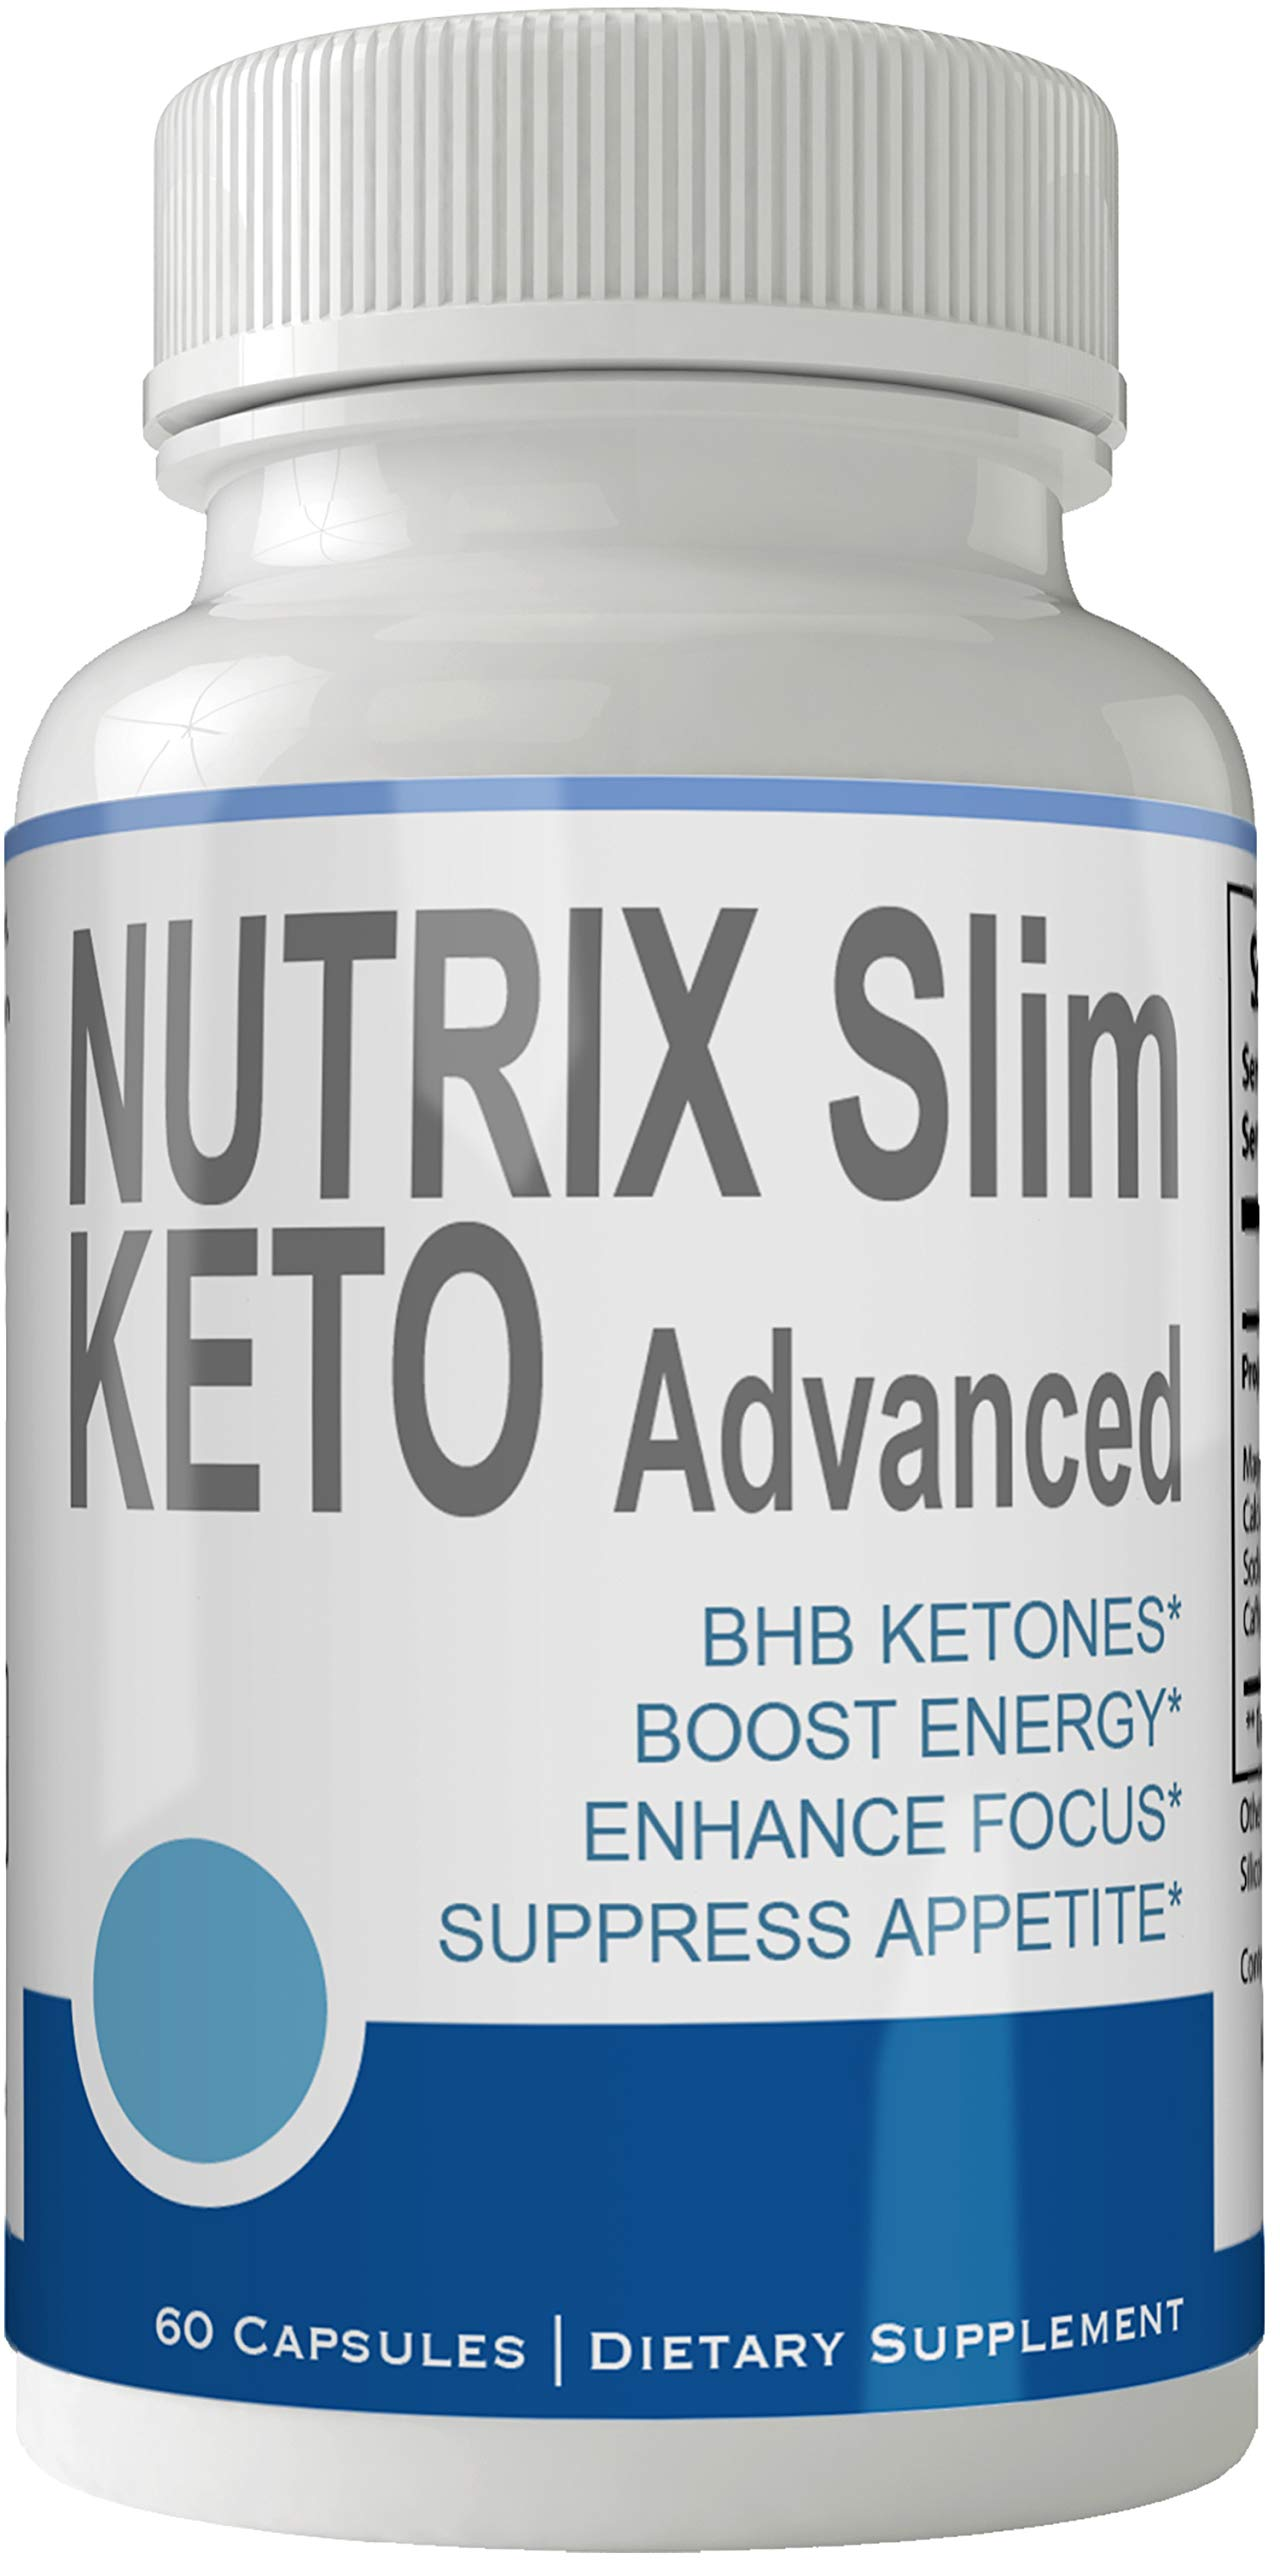 Nutrix Slim Keto Advanced Pills Weight Loss Supplement, Appetite Suppressant with Ultra Advanced Natural Ketogenic Capsules, 800 mg Fast Formula with BHB Salts Ketone Diet Boost Metabolism and Focus